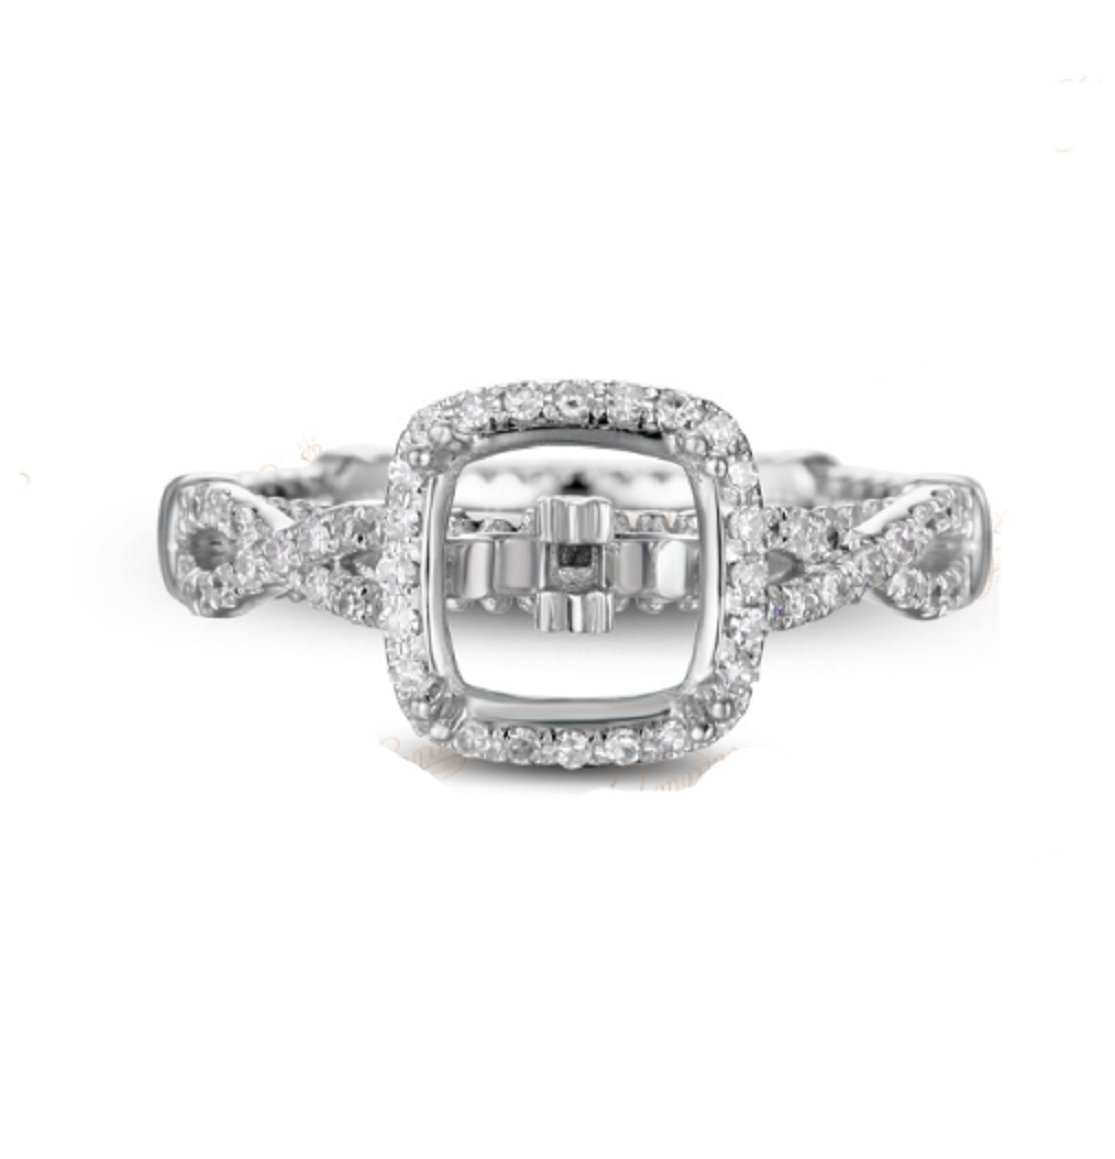 GOWE 7.5x7.5mm Cushion Cut Natural Diamond Solid 14K Two Tone Gold Semi Mount Ring by GOWE